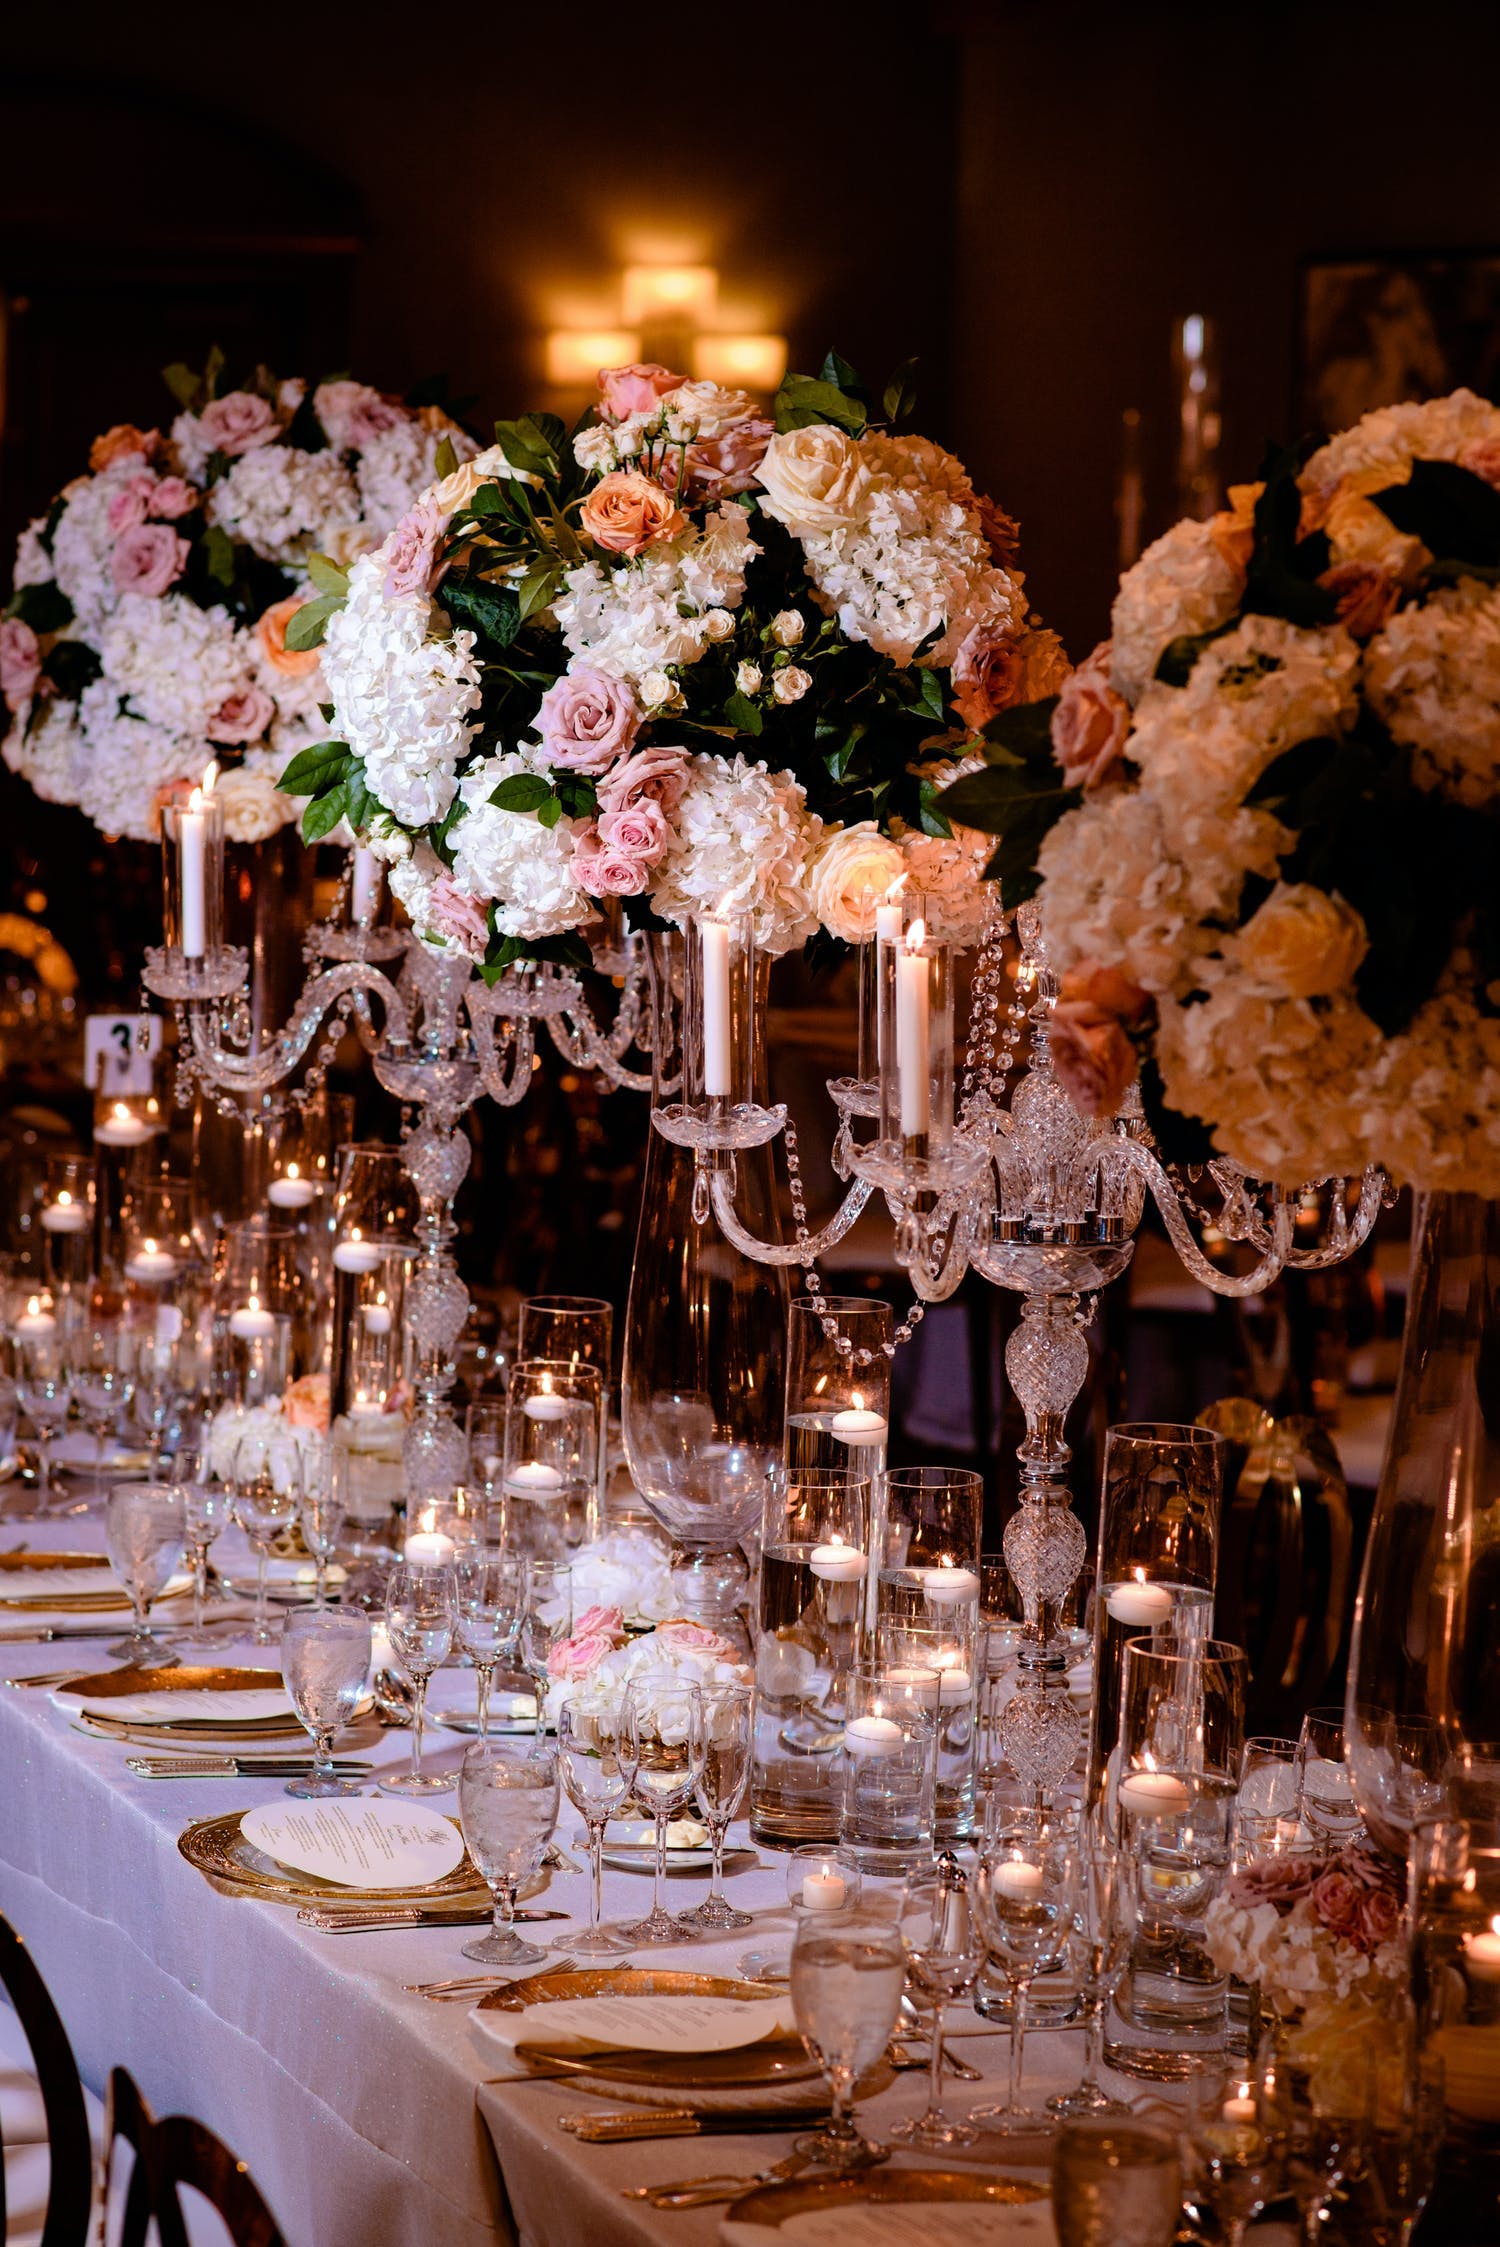 Wedding Tablescape With Pink and White Flowers on Crystal Fringed Candelabras Planned by Doyin Fash Events   PartySlate